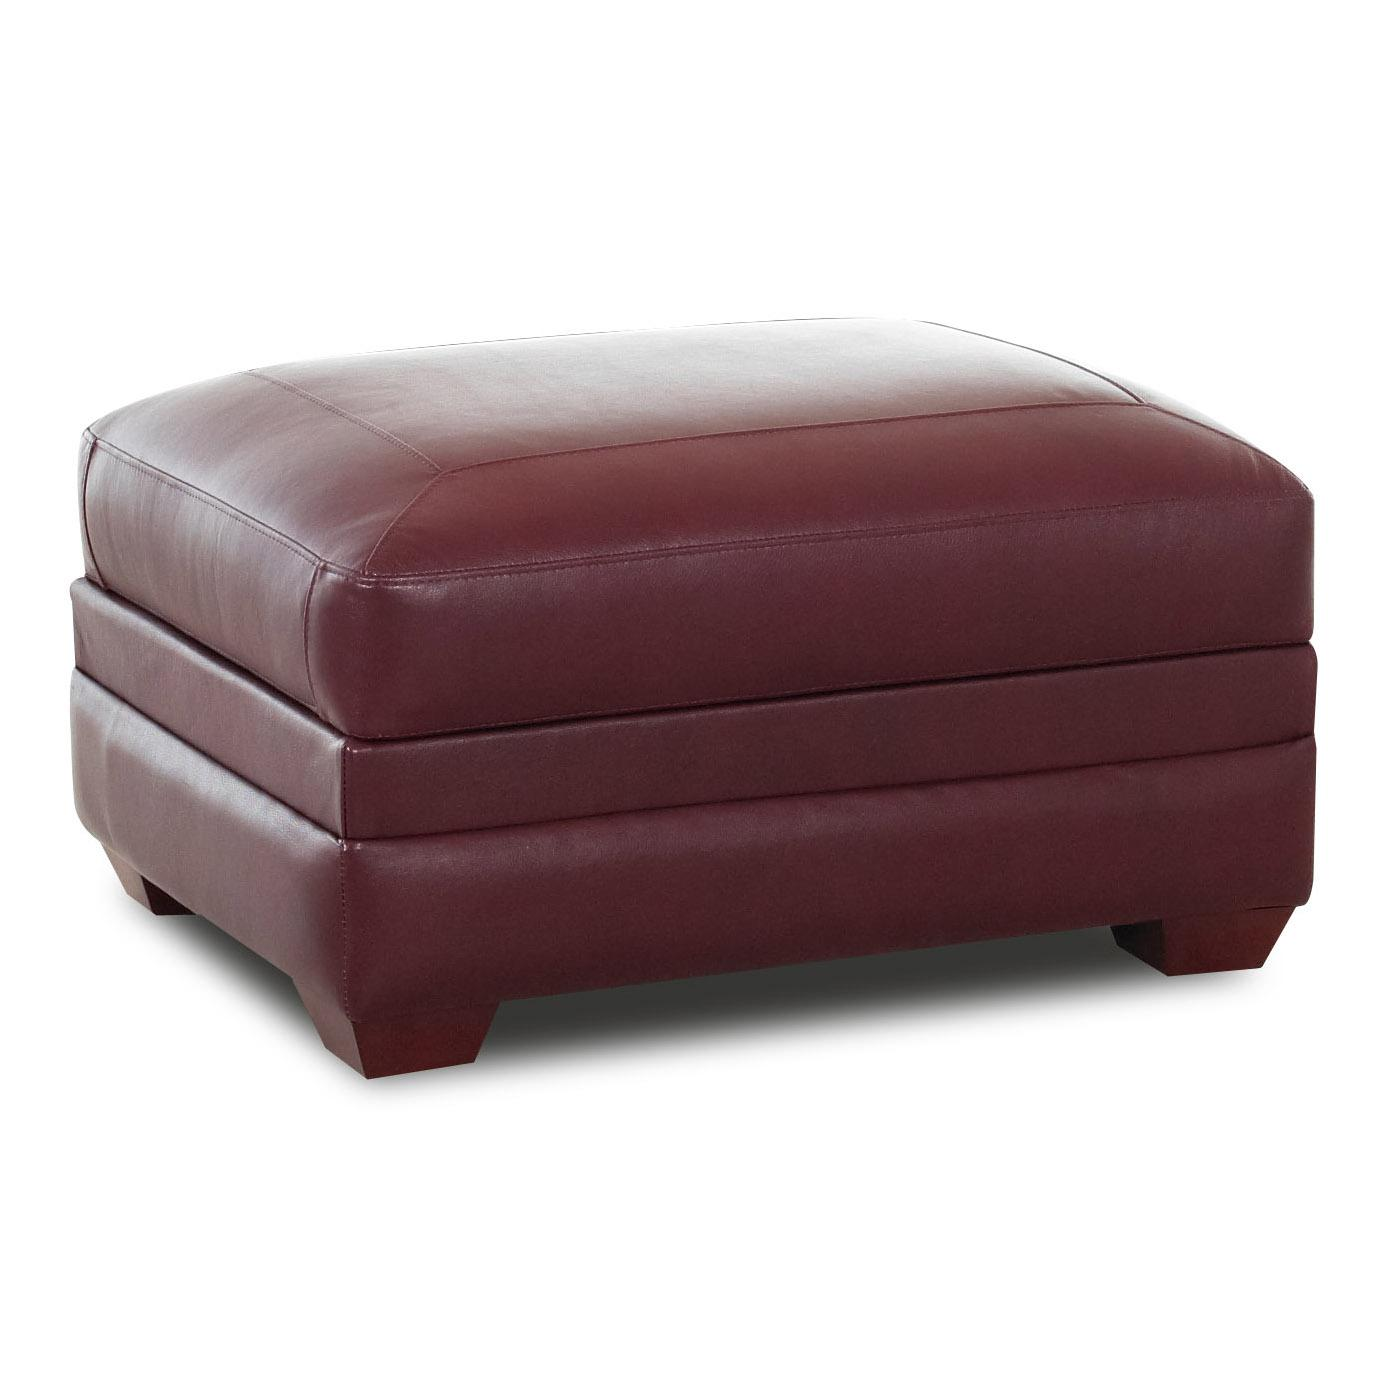 Klaussner Chairs and Accents Switch Storage Ottoman - Item Number: LDP7400STGOT